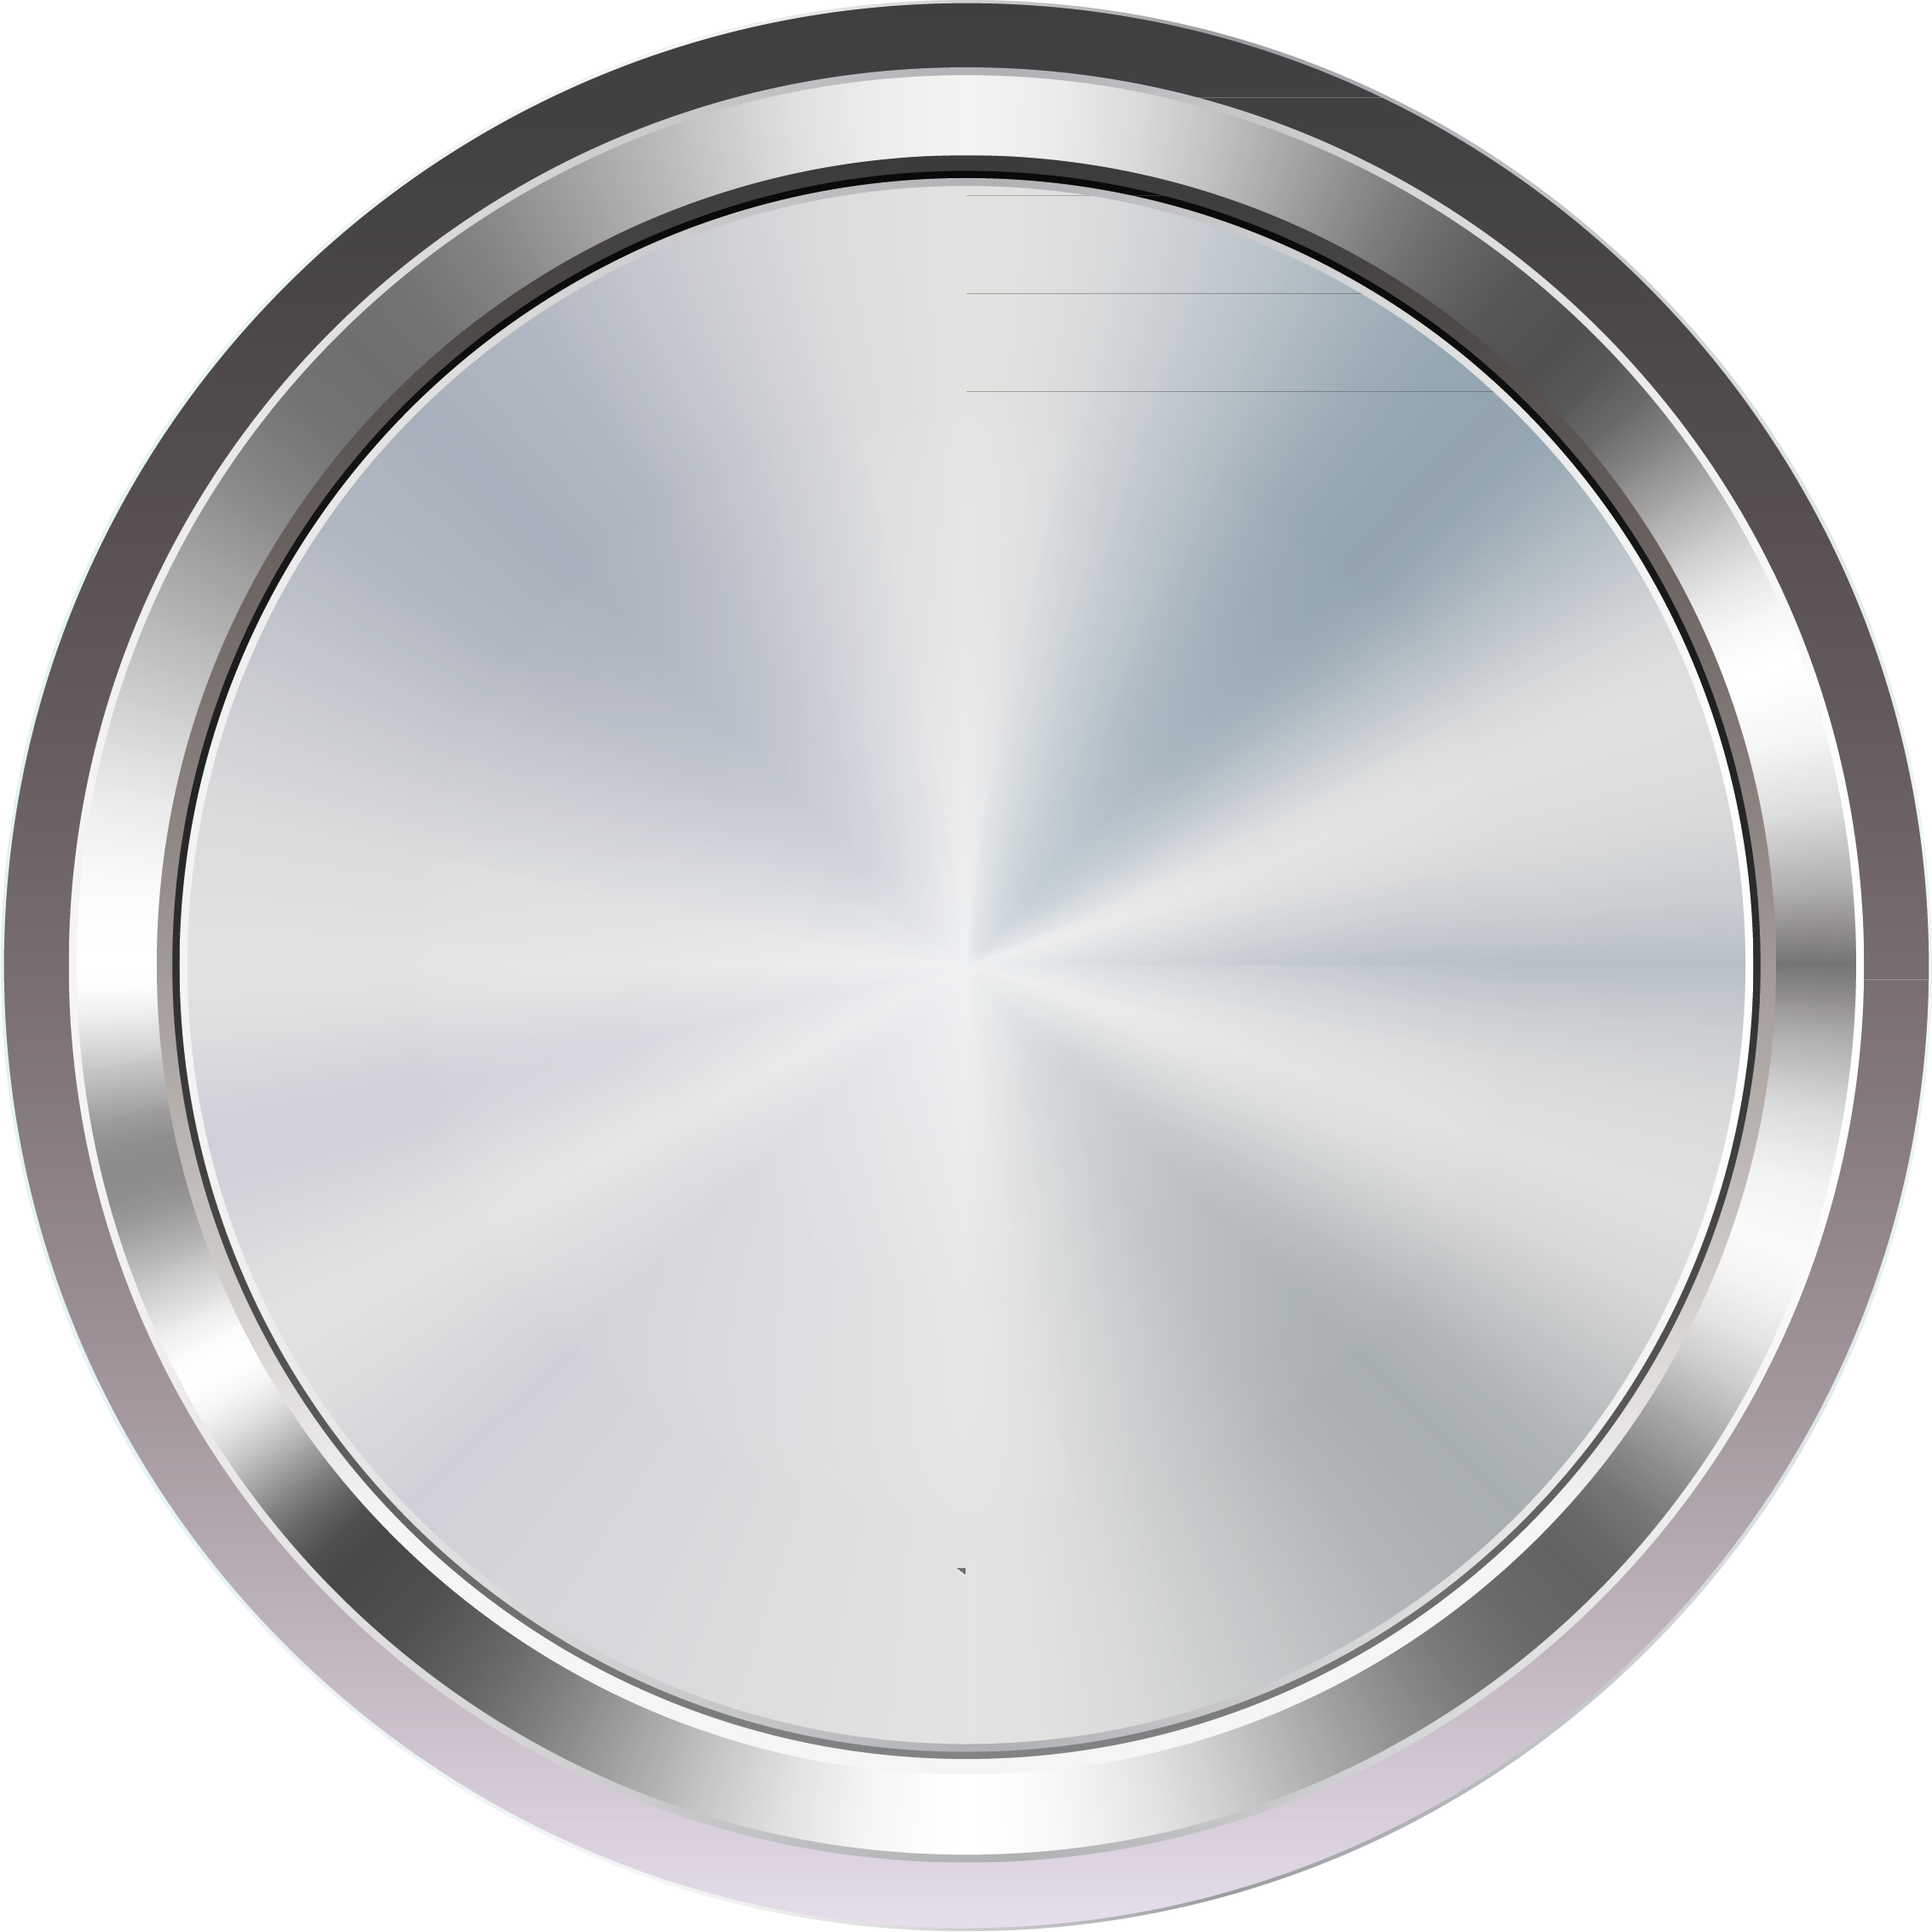 Button PNG Image with Transparent Background.